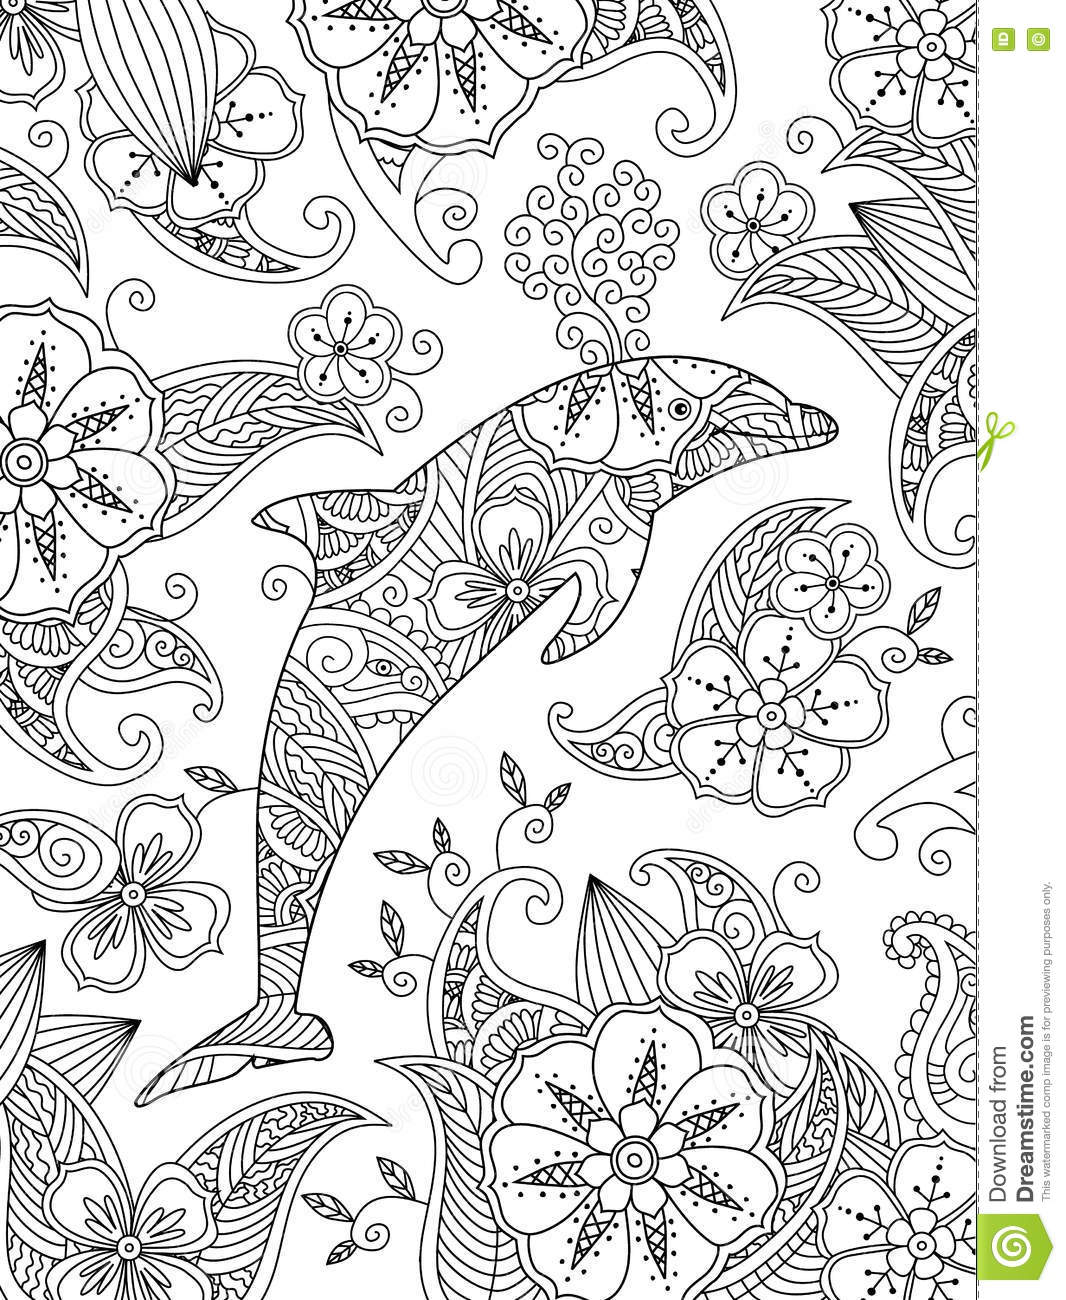 Coloring Page With One Jumping Dolphin On Floral Background. Stock ...